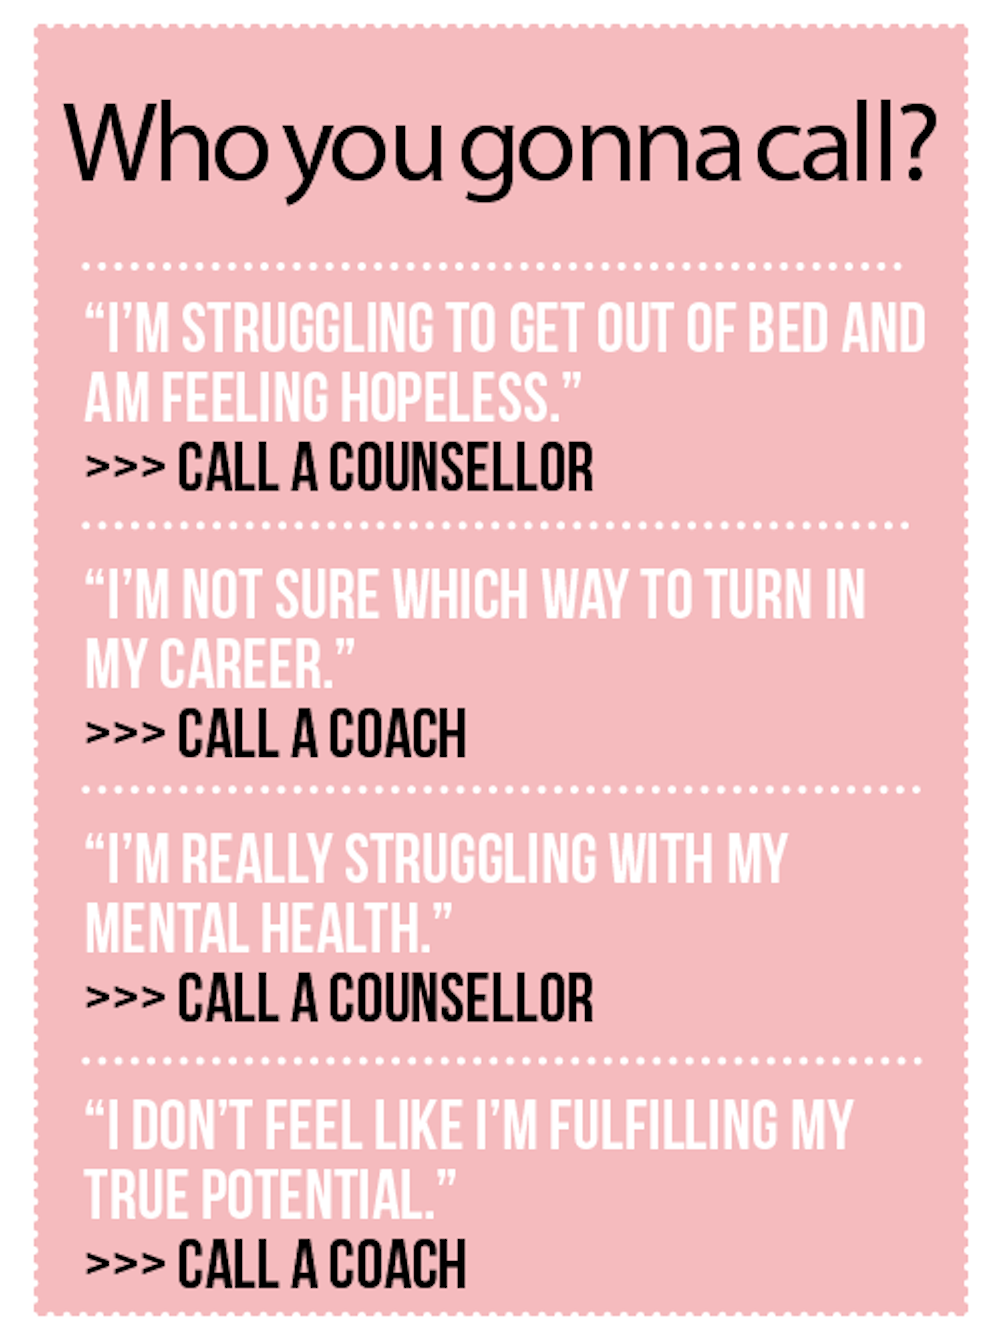 Counselling vs life coach